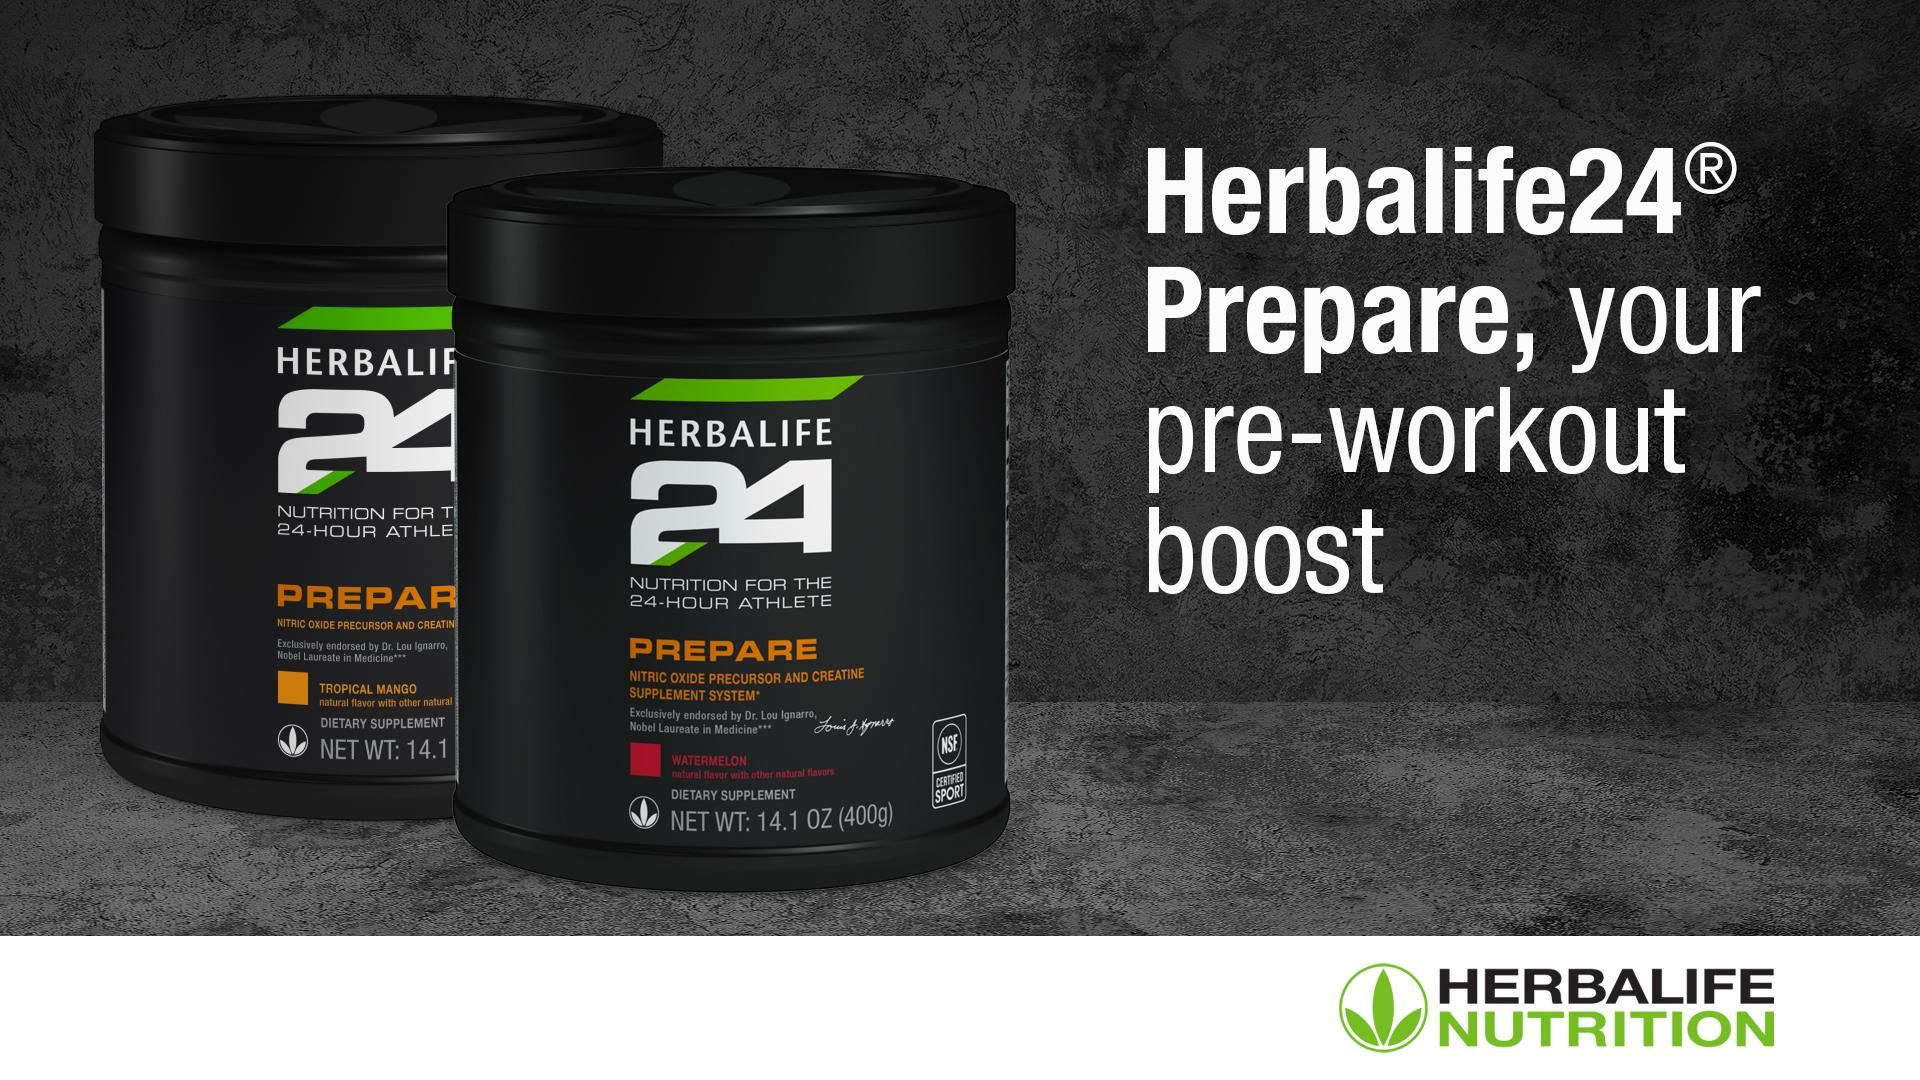 Herbalife24® Prepare: Know the Products